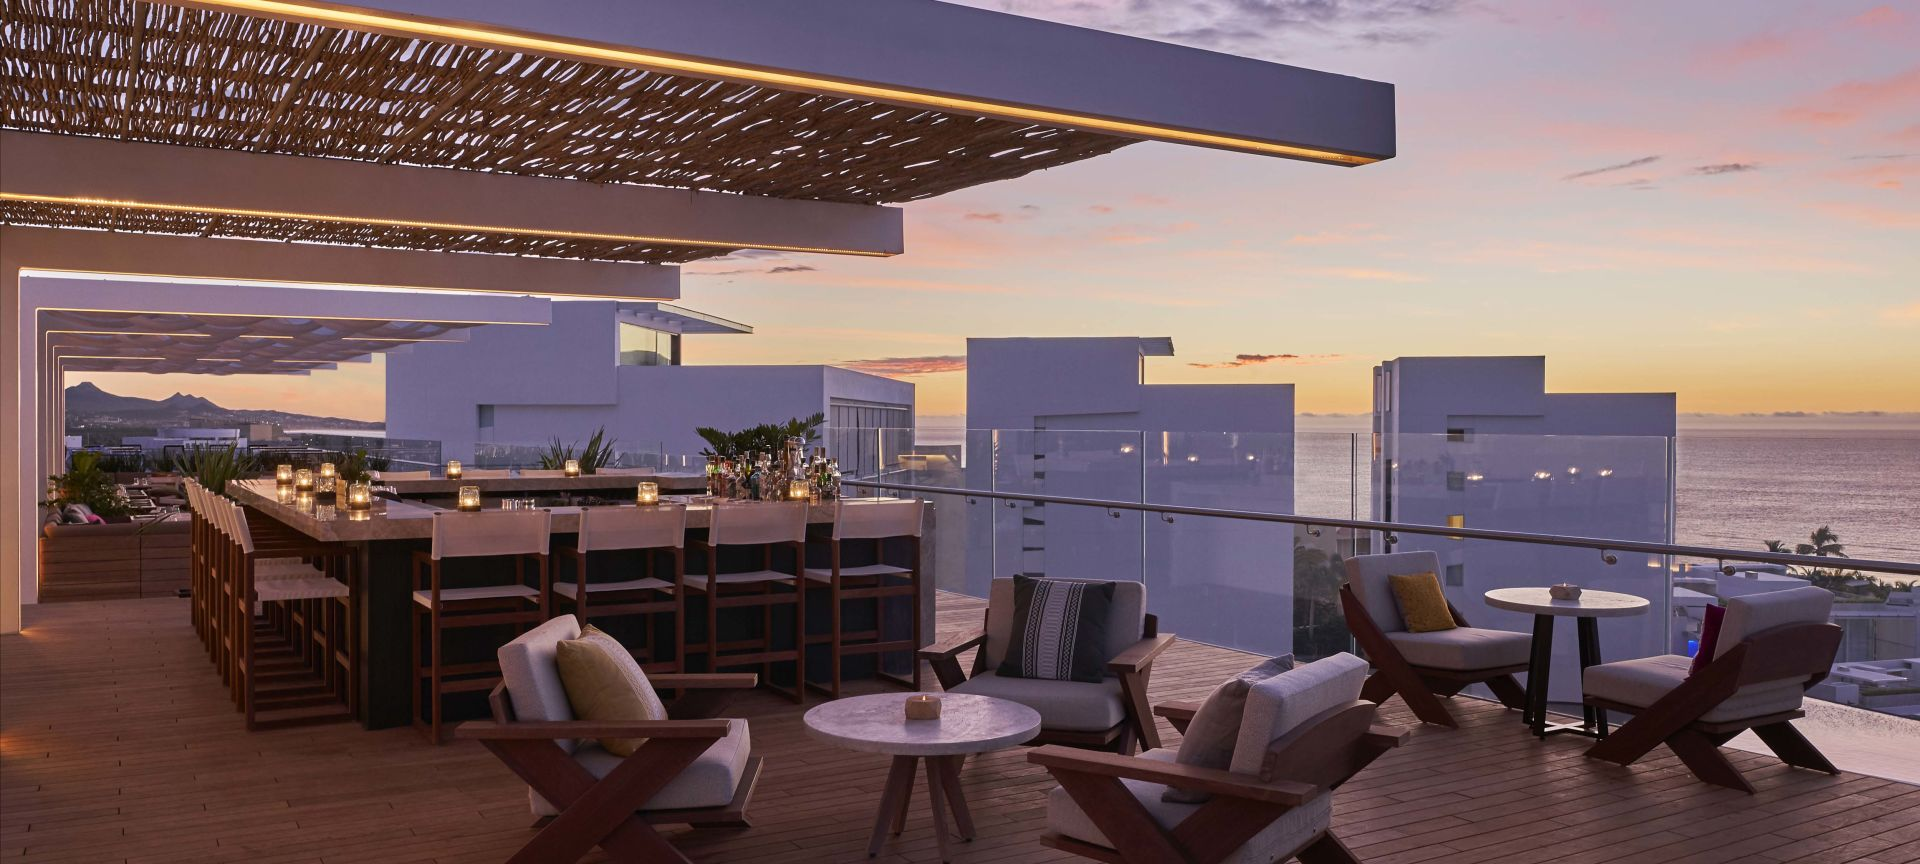 Cielomar Rooftop Bar at Viceroy Los Cabos